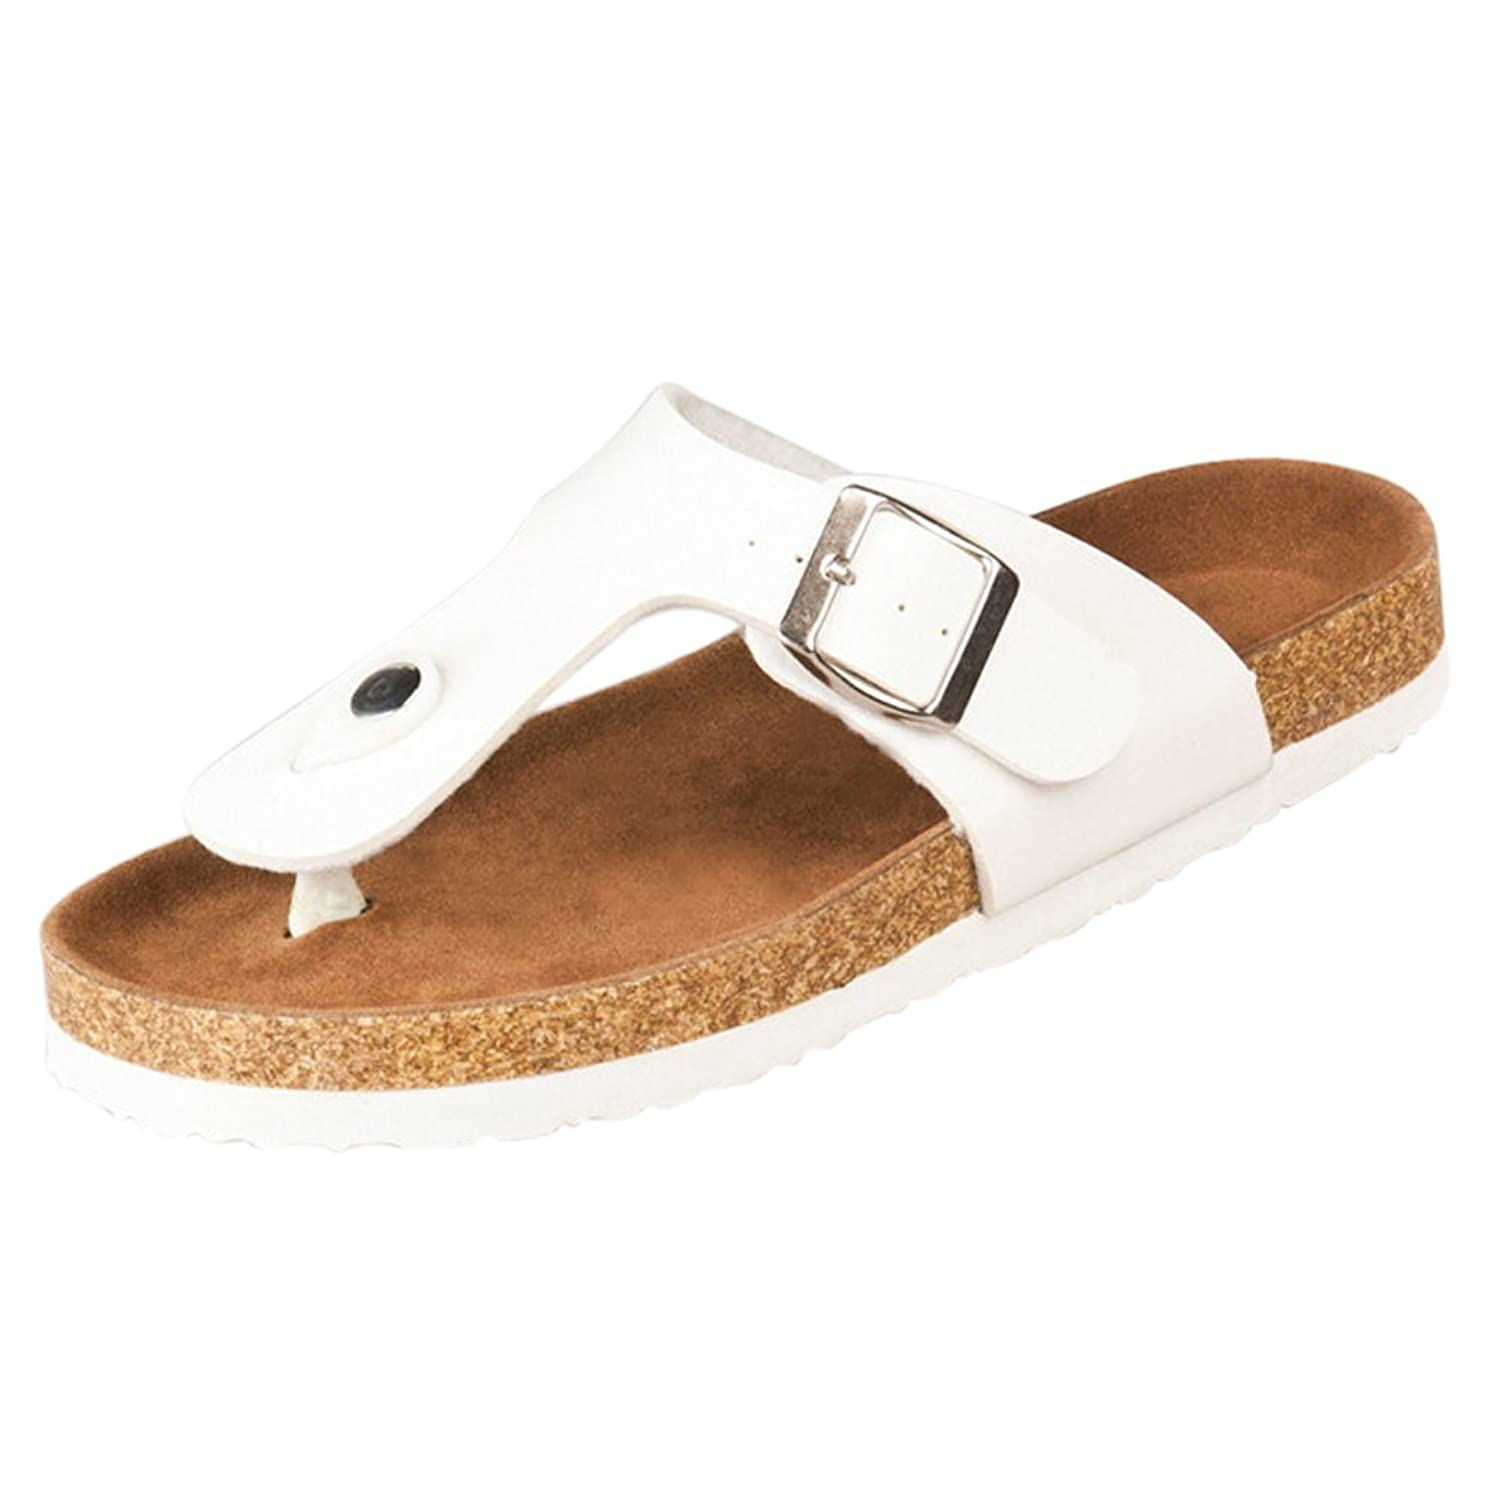 SODIAL(R)New cork flats sandals men and women summer flip flops unisex casual slippers shoes size 12 White